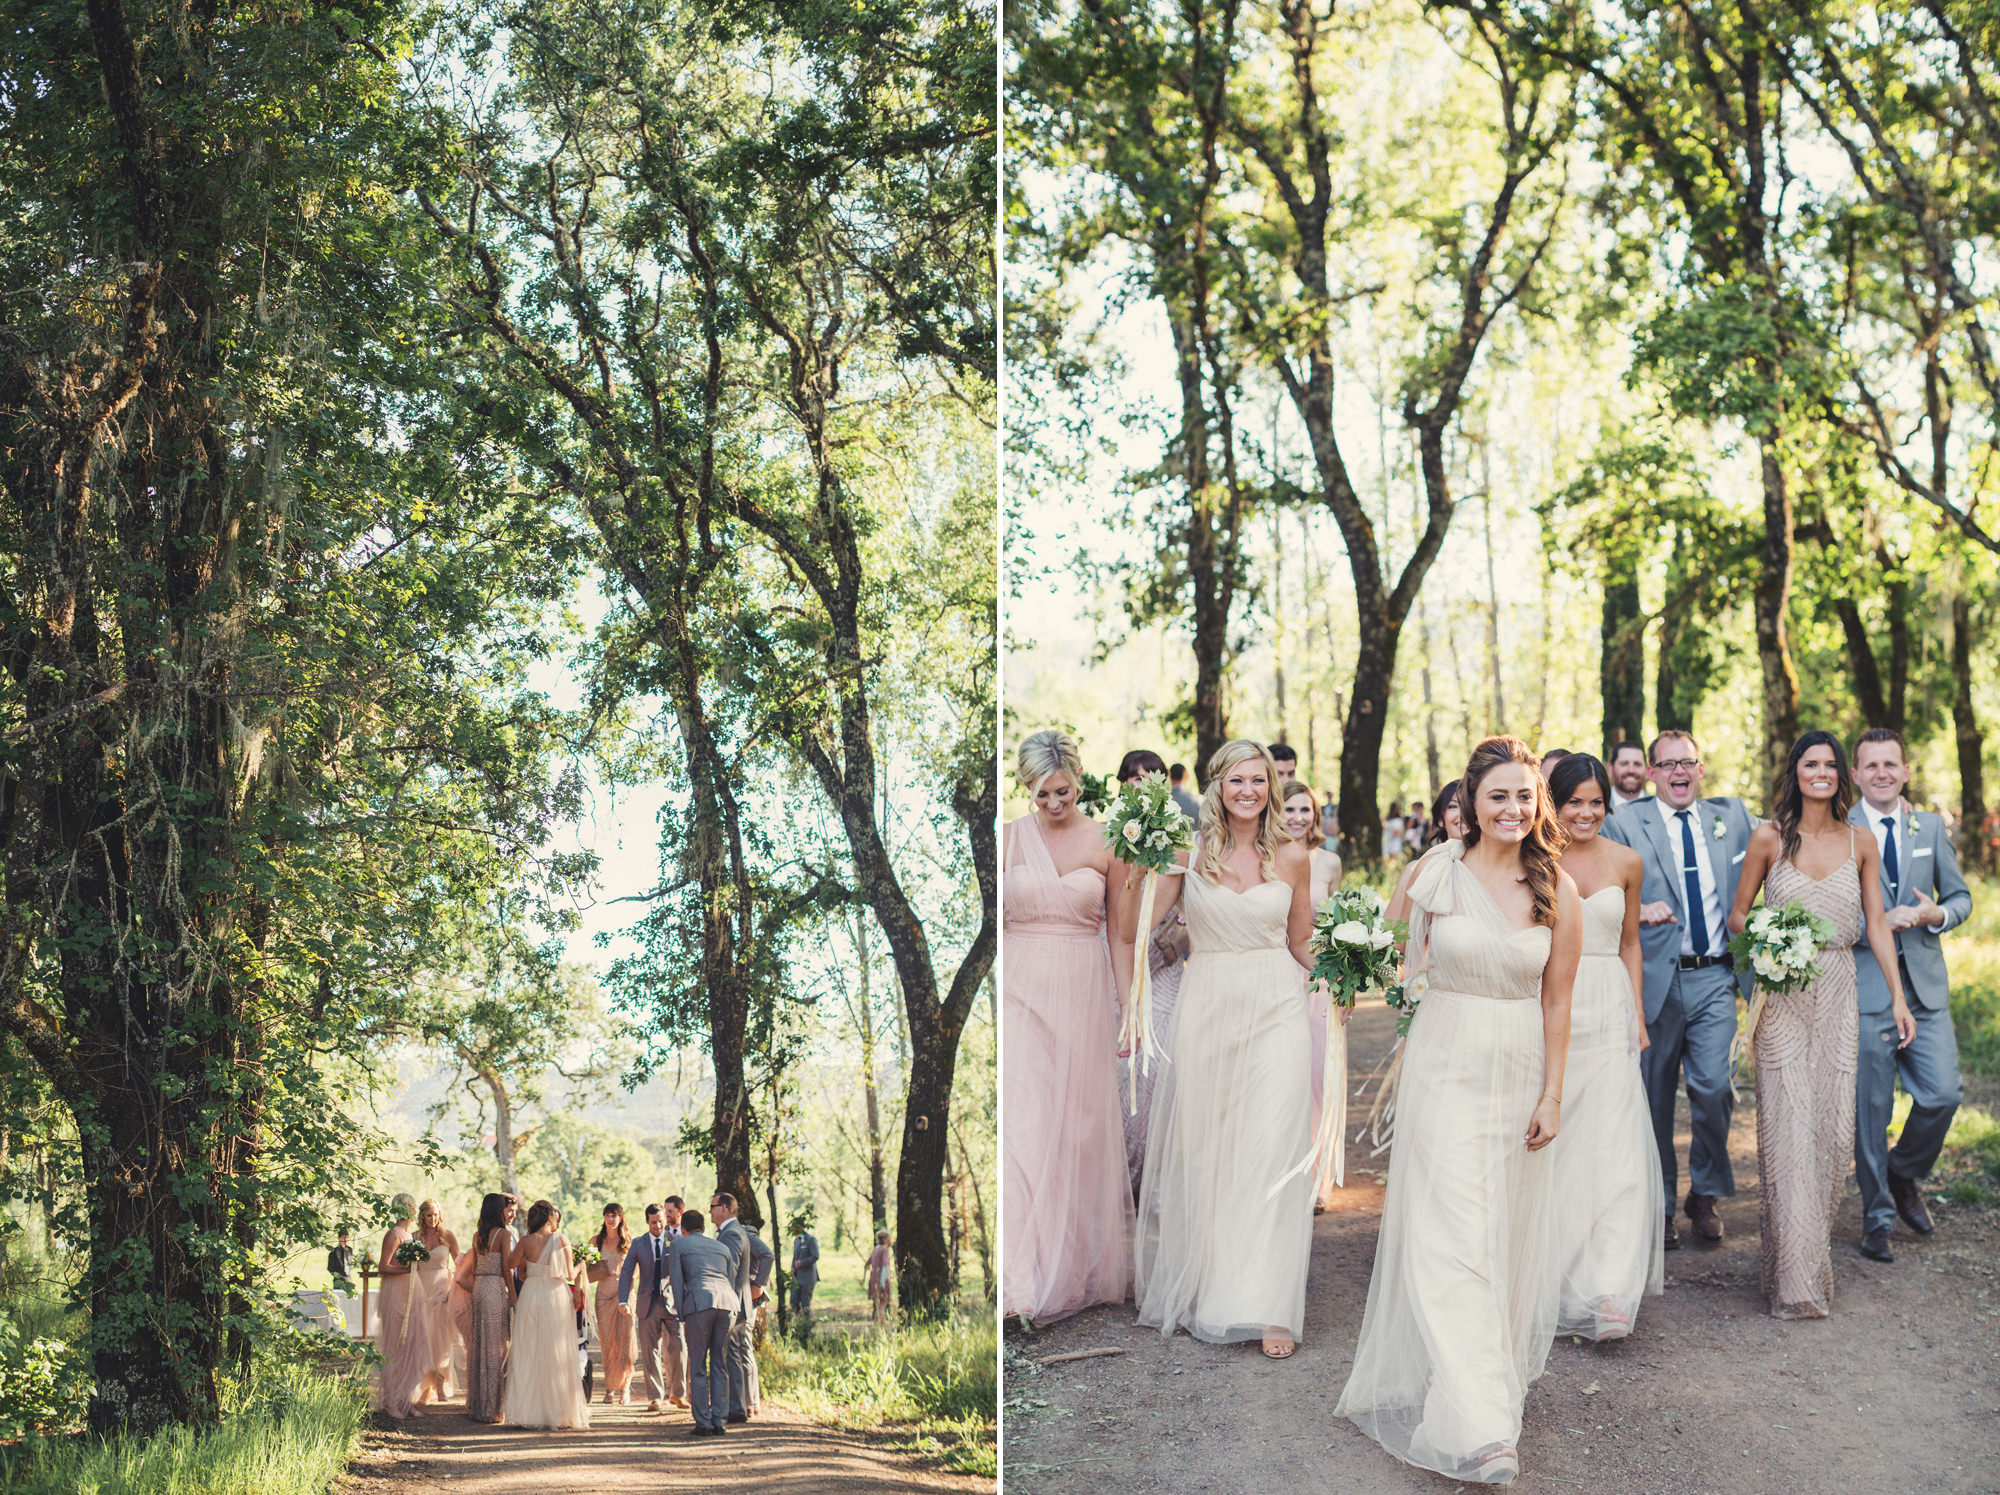 Wedding in Campovida @Anne-Claire Brun 78